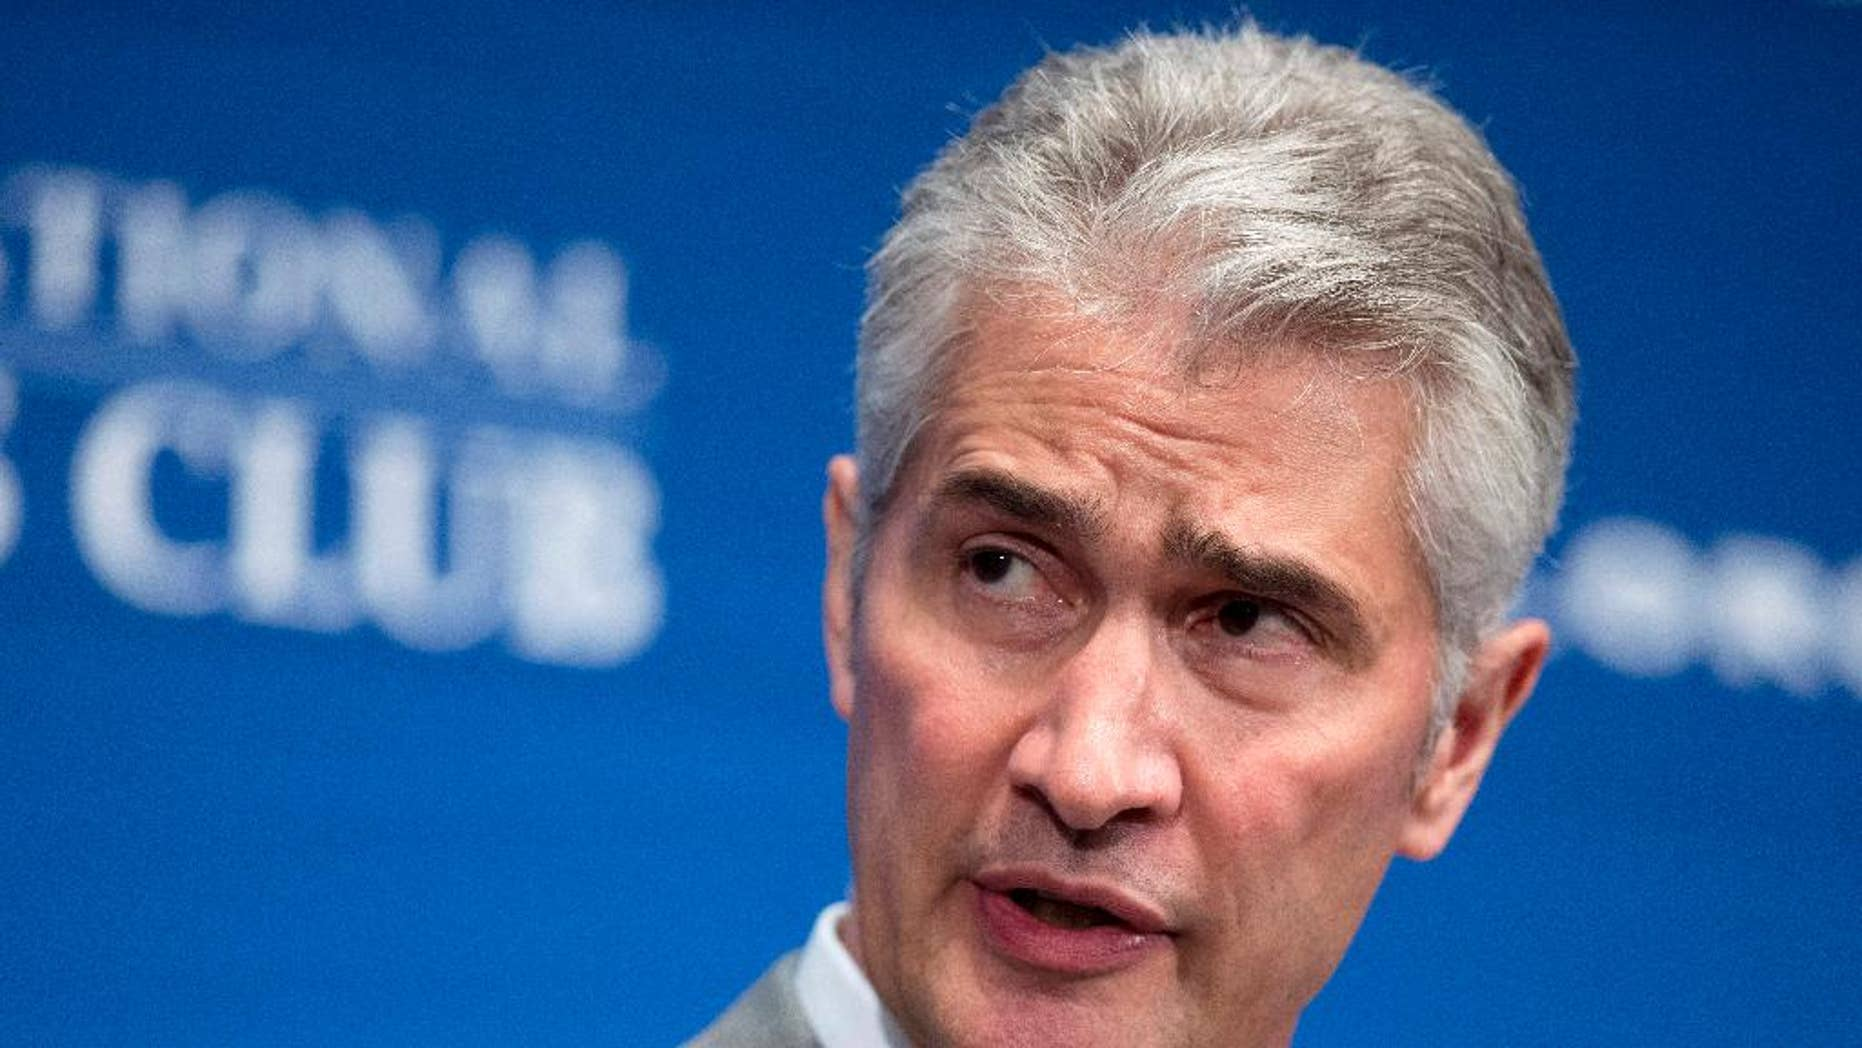 FILE - In this May 15, 2015, file photo, United Airlines Chairman, President and Chief Executive Officer Jeff Smisek, speaks during a panel discussion on unfair international competition at the National Press Club in Washington. United Airlines said Tuesday, Sept. 8, 2015, that Smisek has stepped down as CEO, chairman and president effective immediately and has named Oscar Munoz as president and chief executive officer.  (AP Photo/Manuel Balce Ceneta, File)